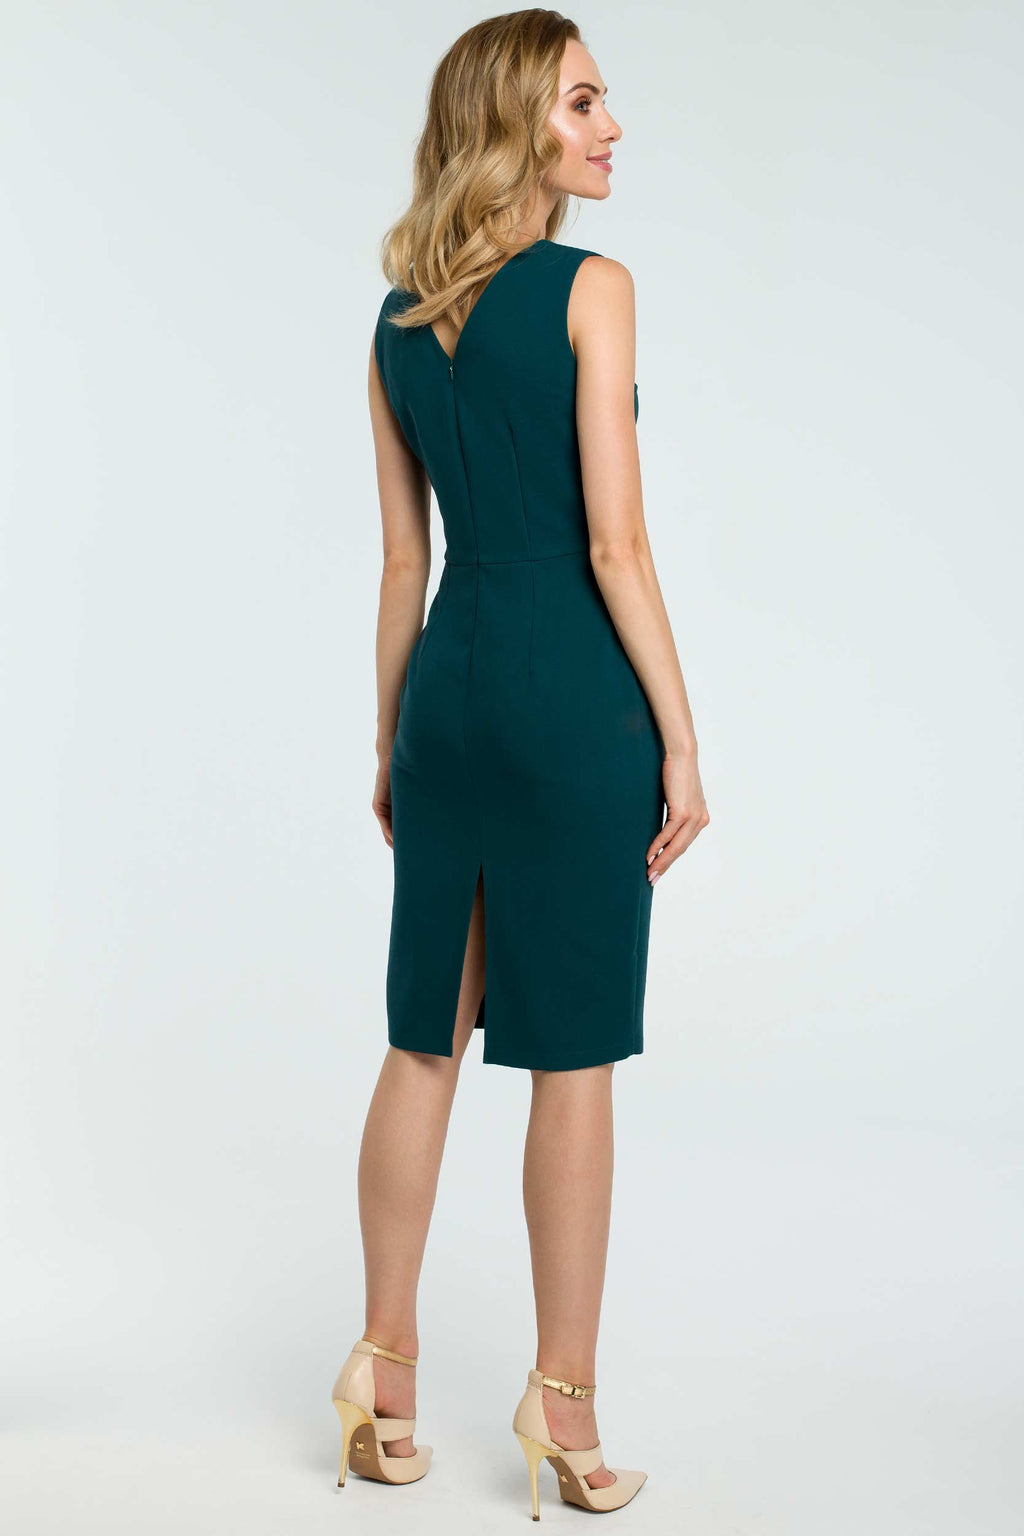 Green Cocktail Pencil Dress With Asymmetric Neckline - So Chic Boutique